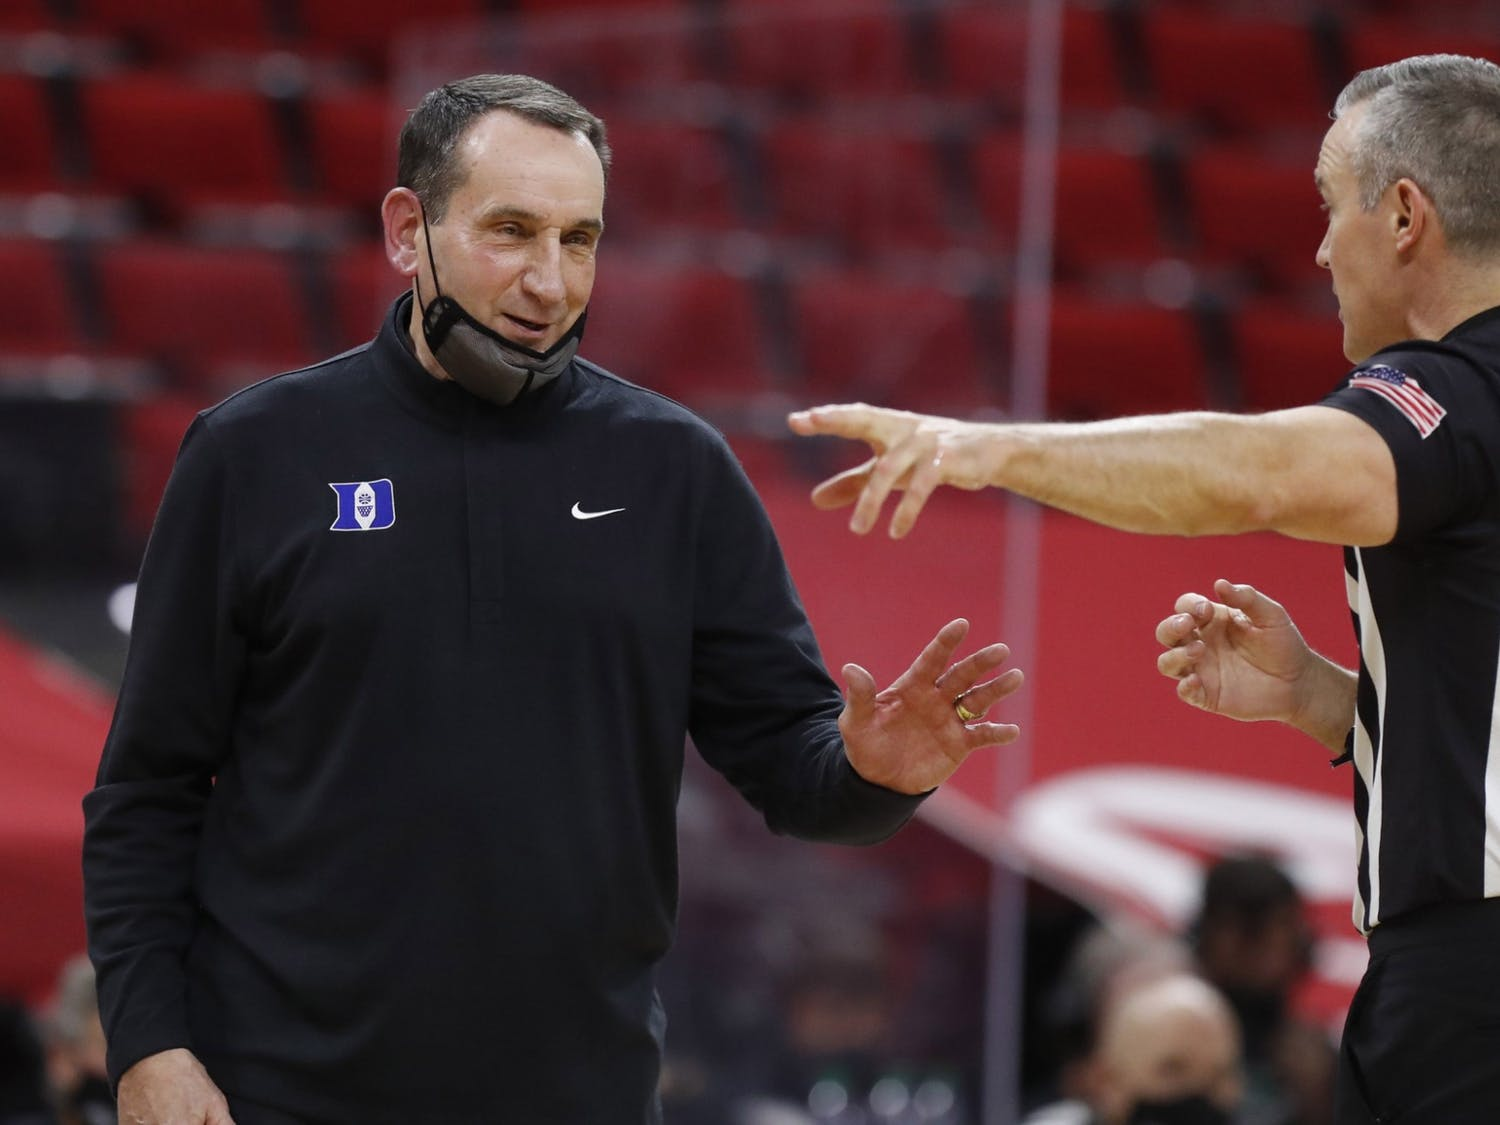 The Blue Devils haven't missed the NCAA tournament since 1995, when Mike Krzyzewski missed the final 19 games of the season.